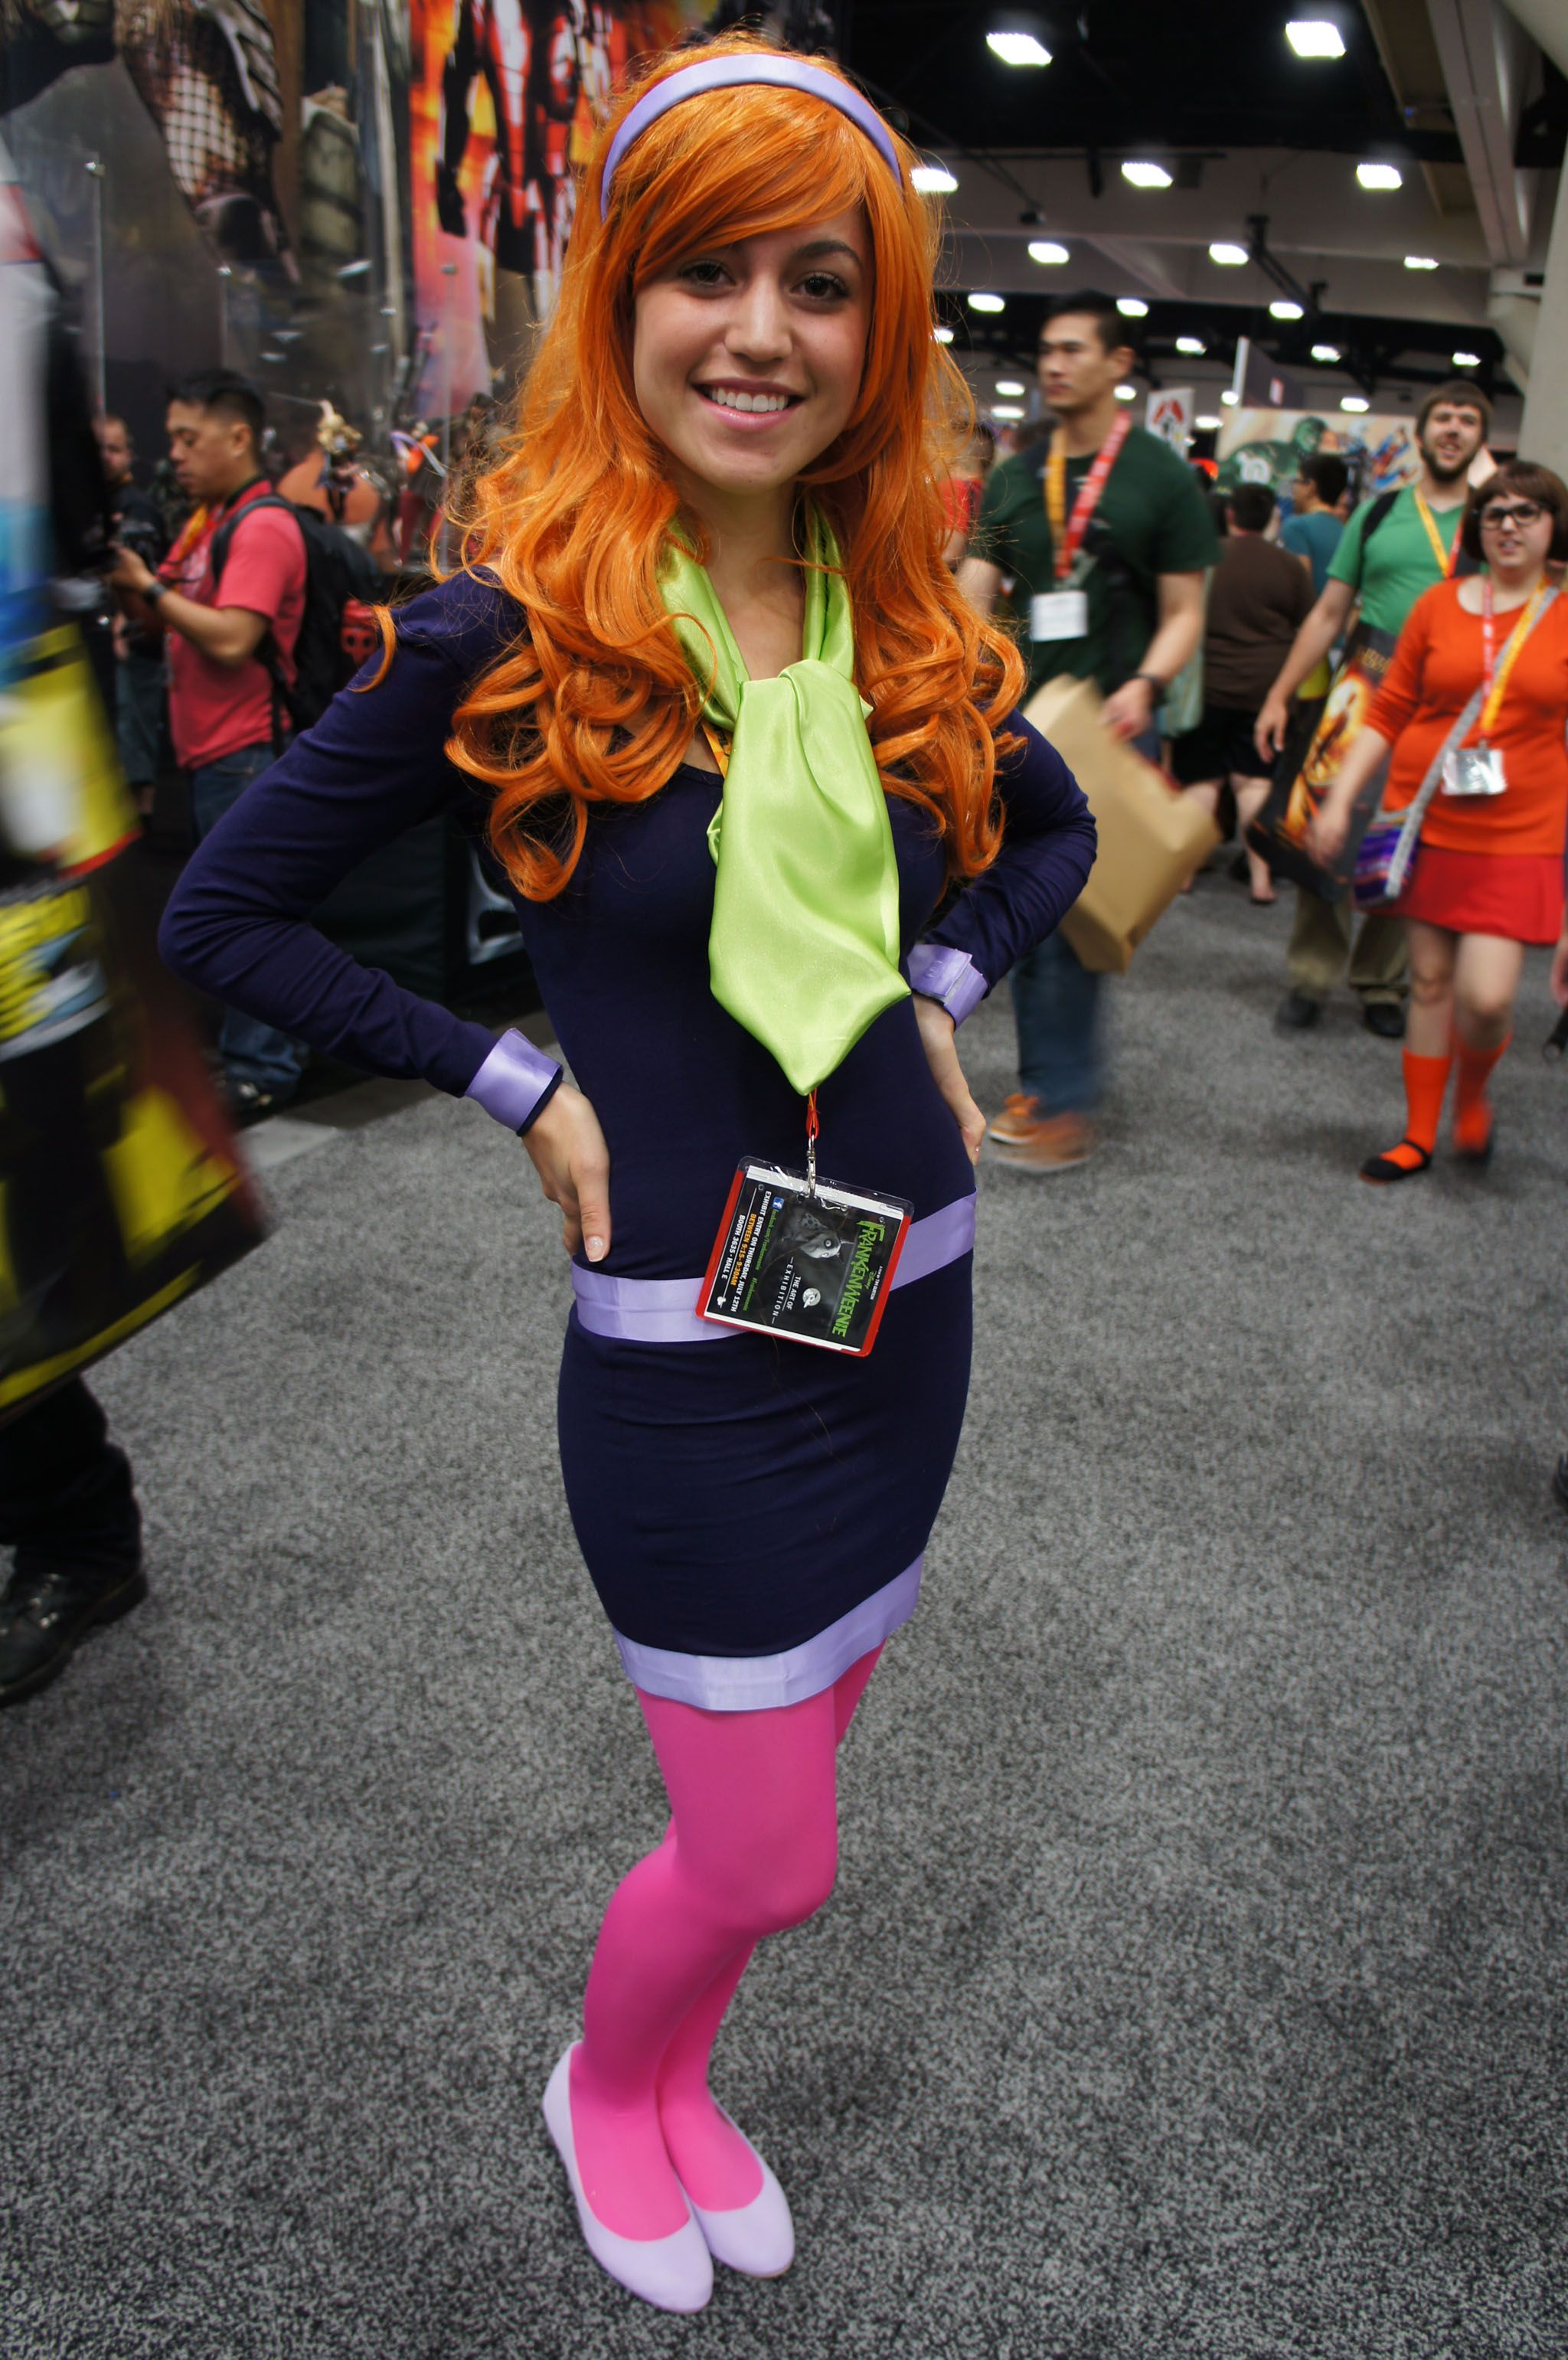 Scooby Doo Comic-Con 2012 Cosplay Gallery - Tested